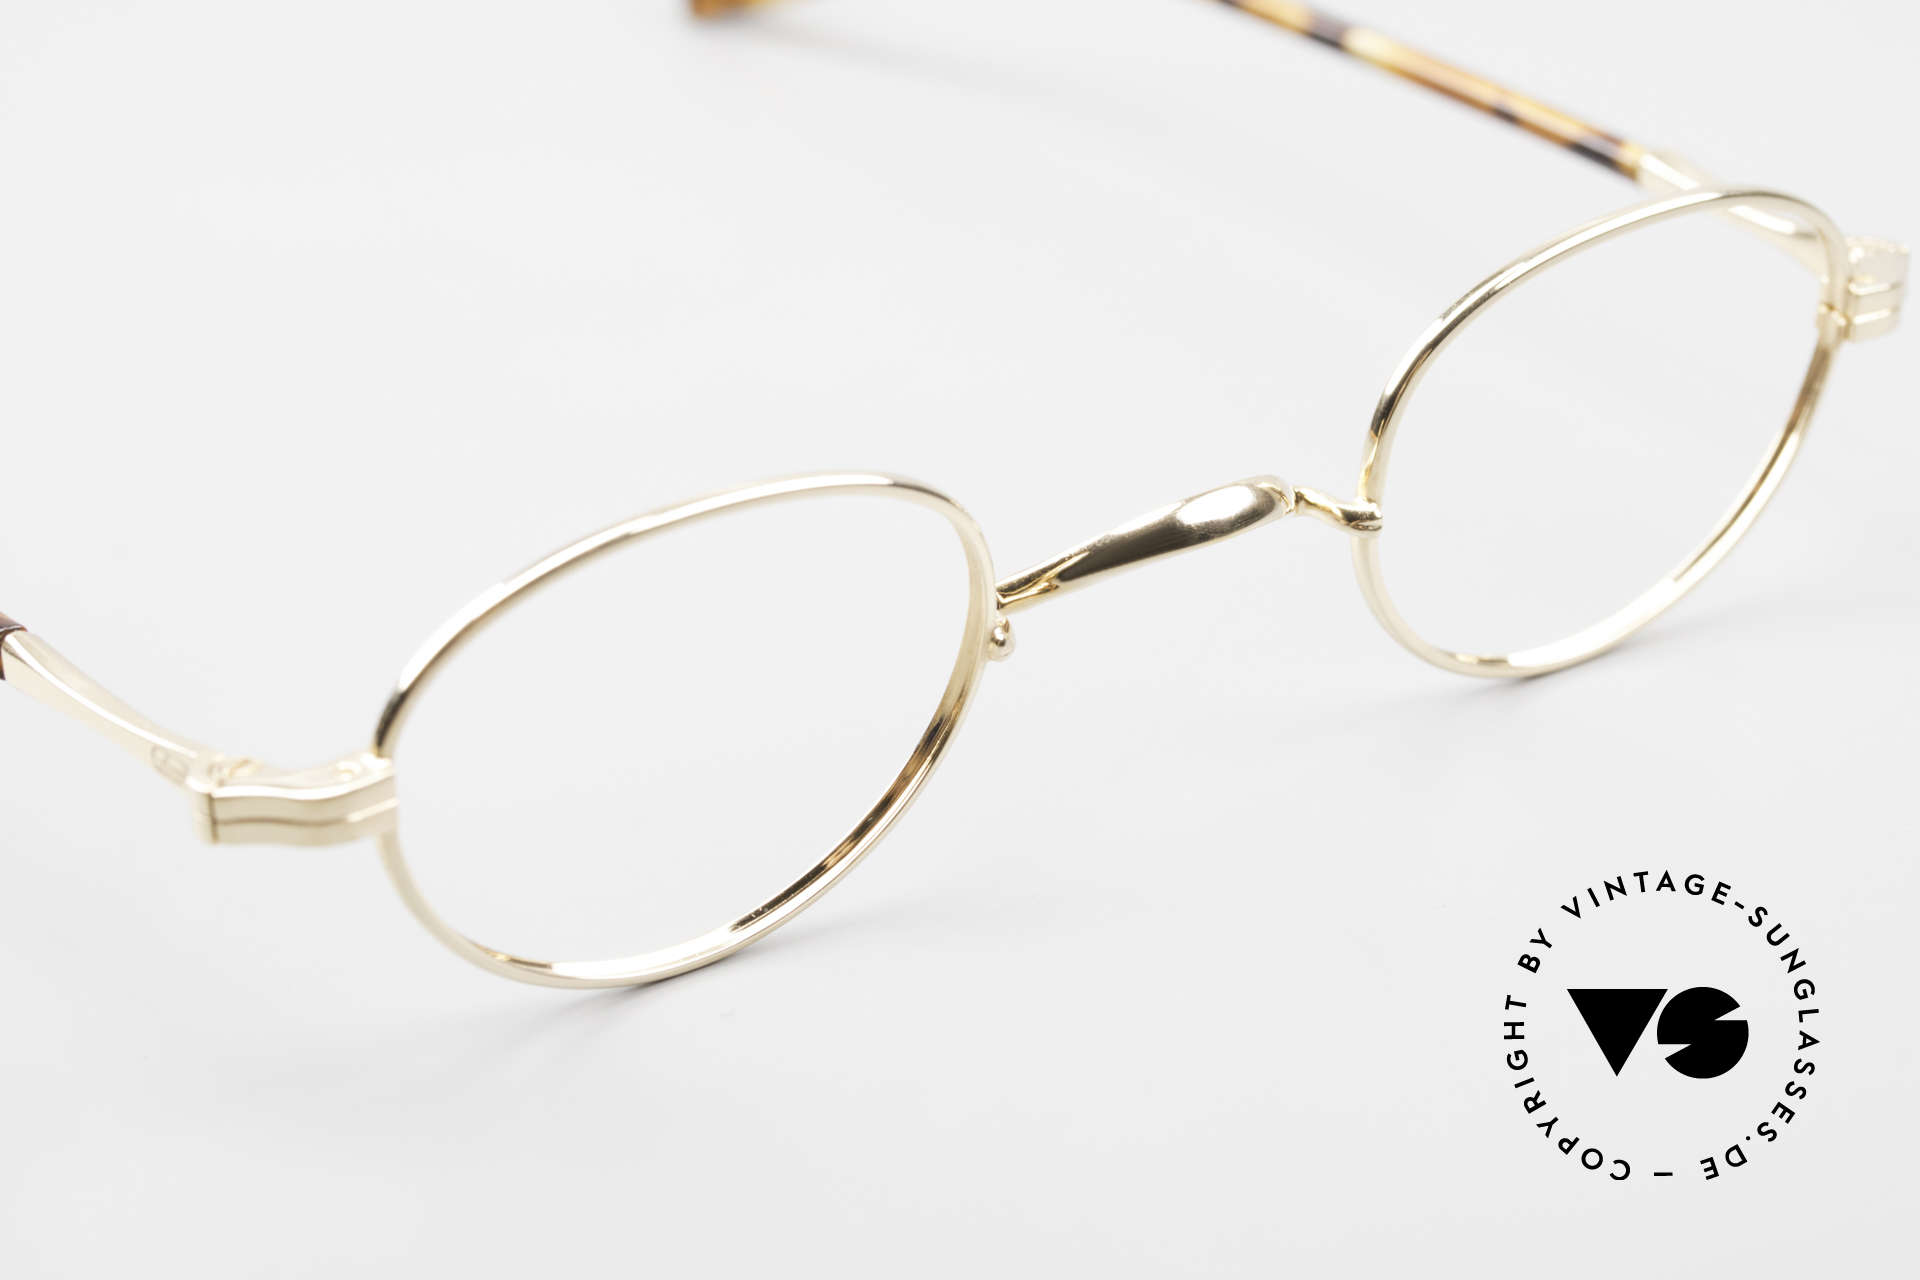 Lunor II A 03 Gold Plated Eyeglass-Frame, a 20 years old, unworn RARITY (for all lovers of quality), Made for Men and Women